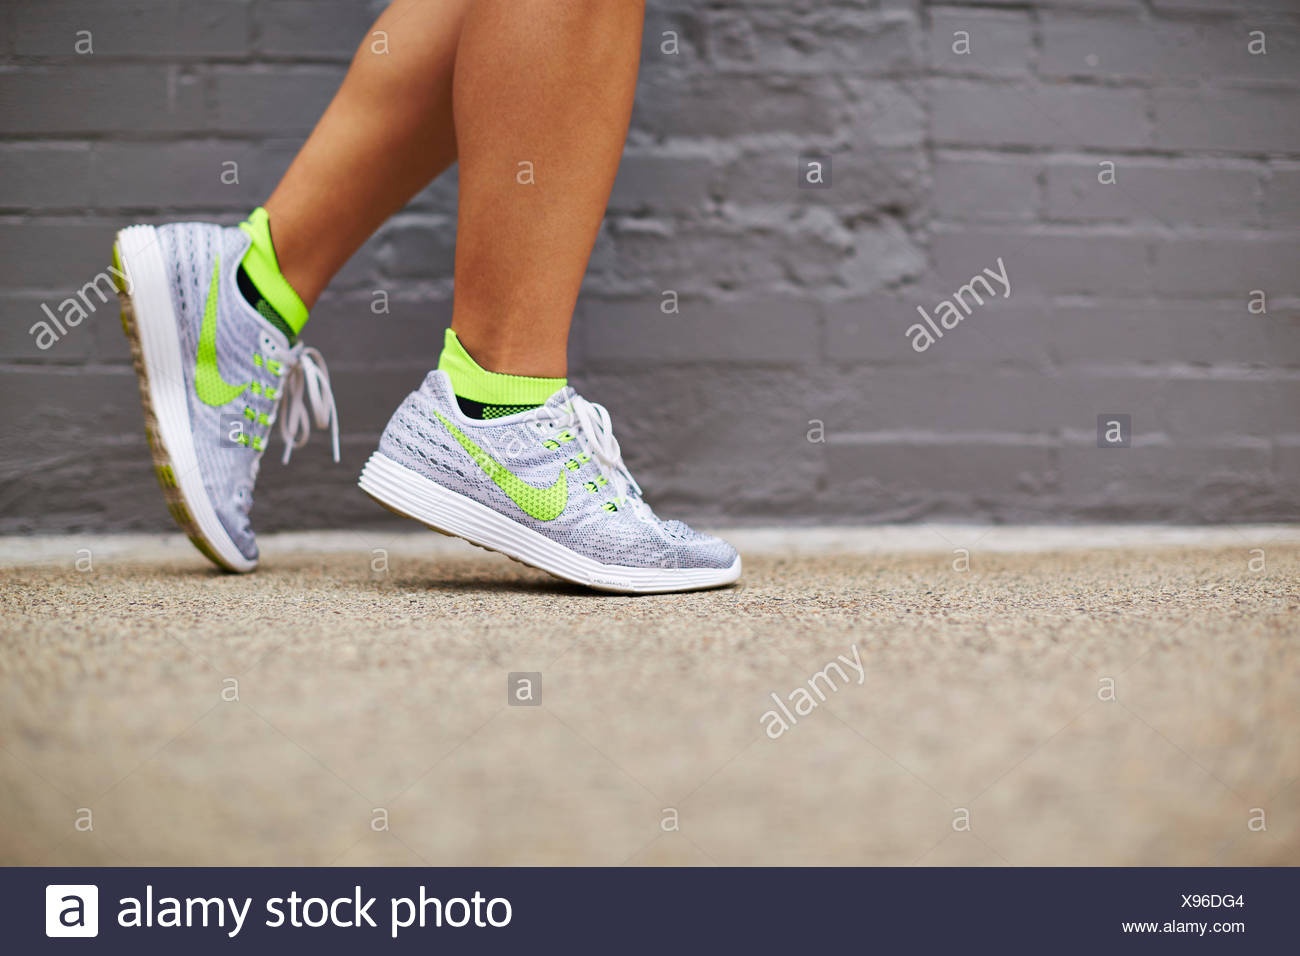 Womans Nike Running Shoes Stock Photo